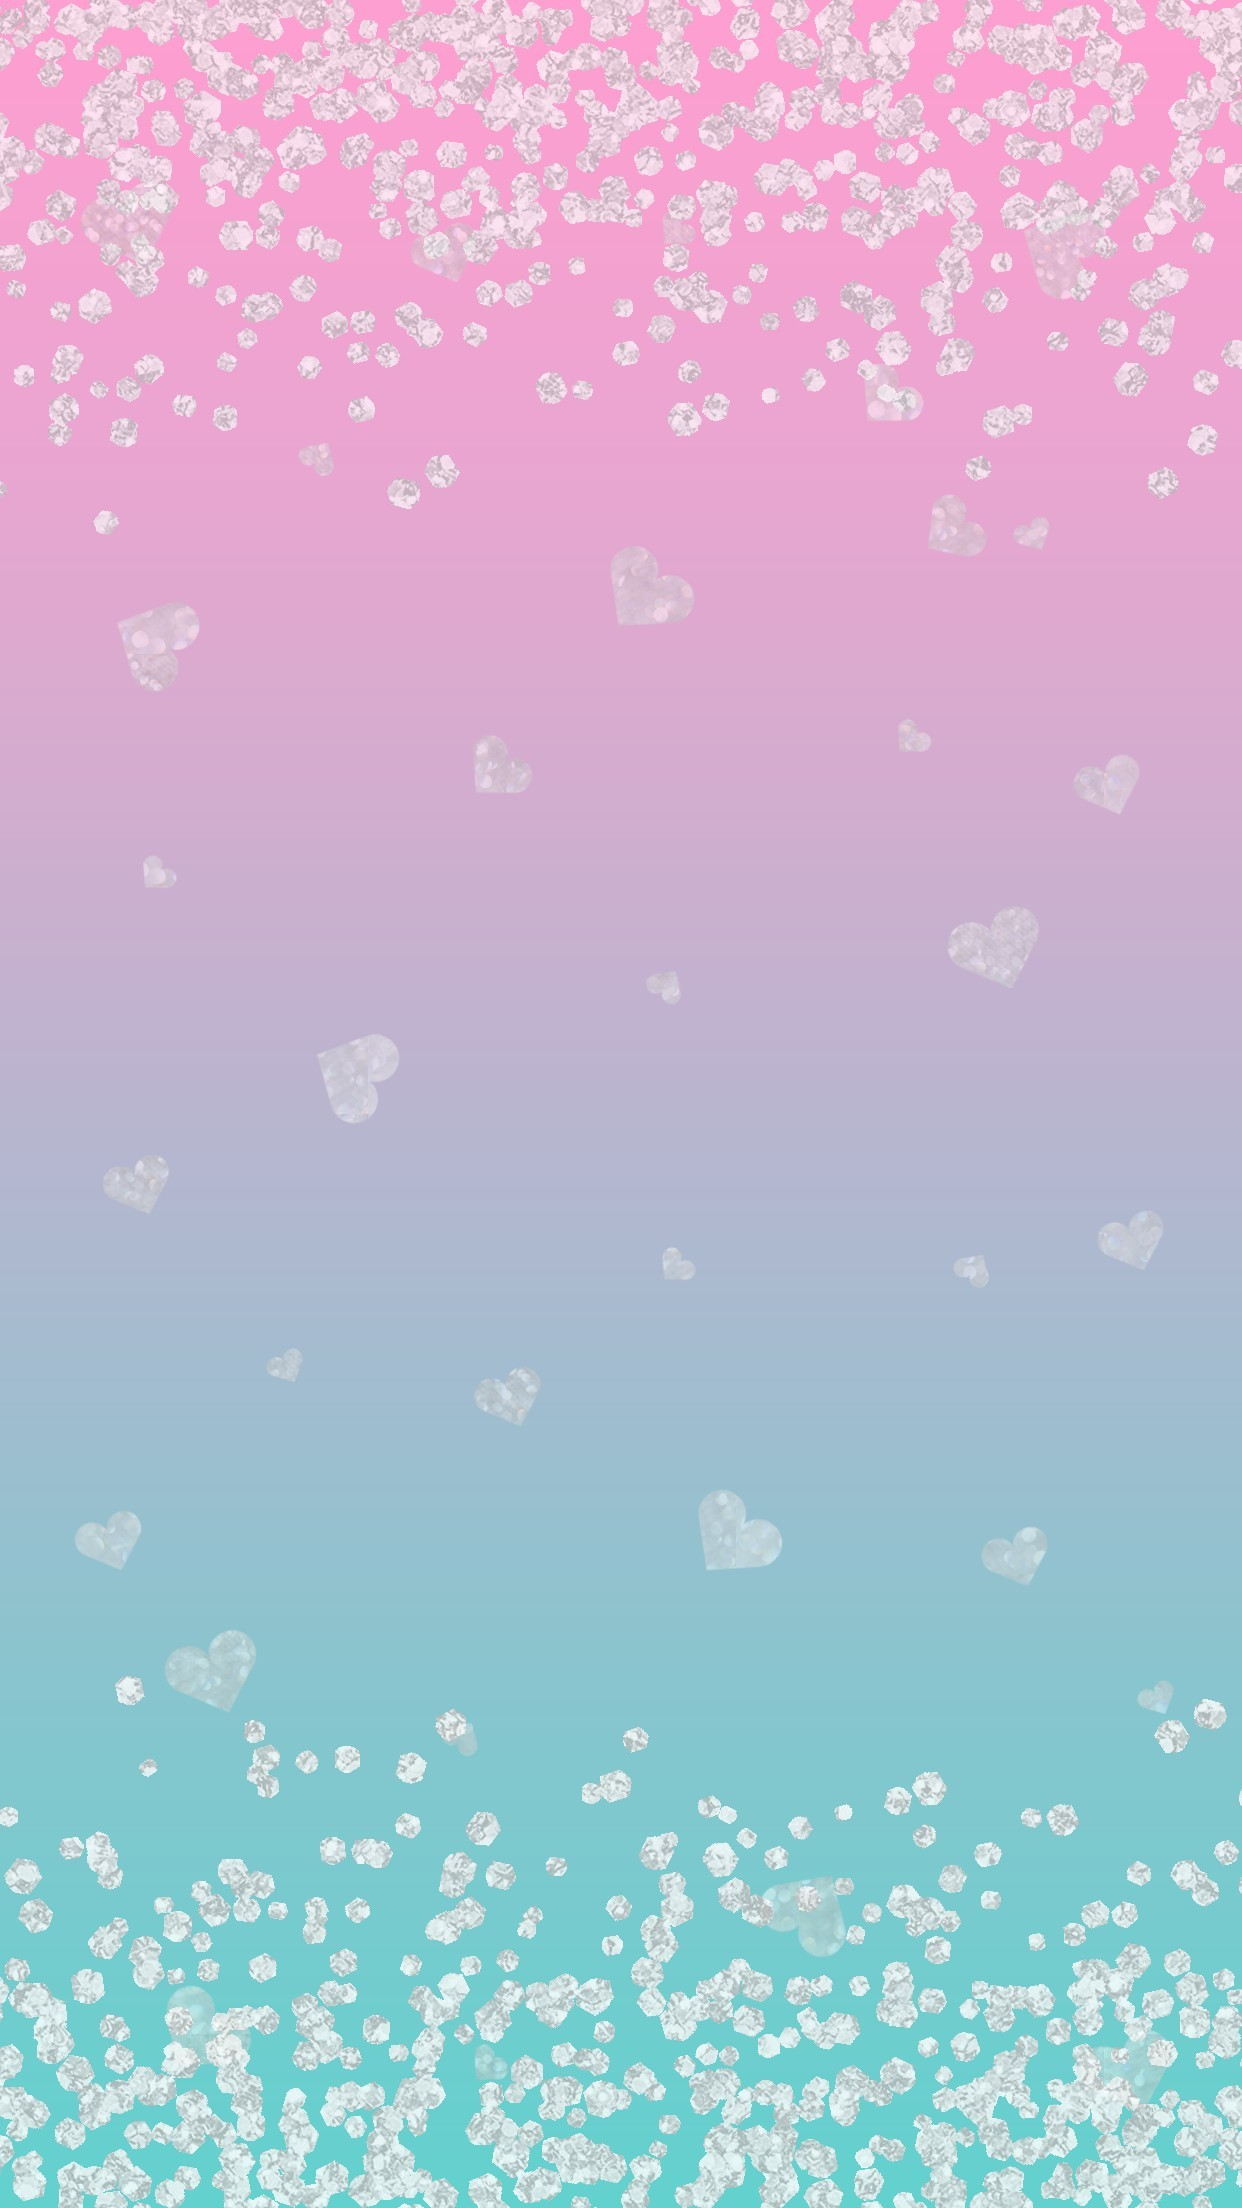 Wallpaper, background, iPhone, Android, HD, pink, blue, green,